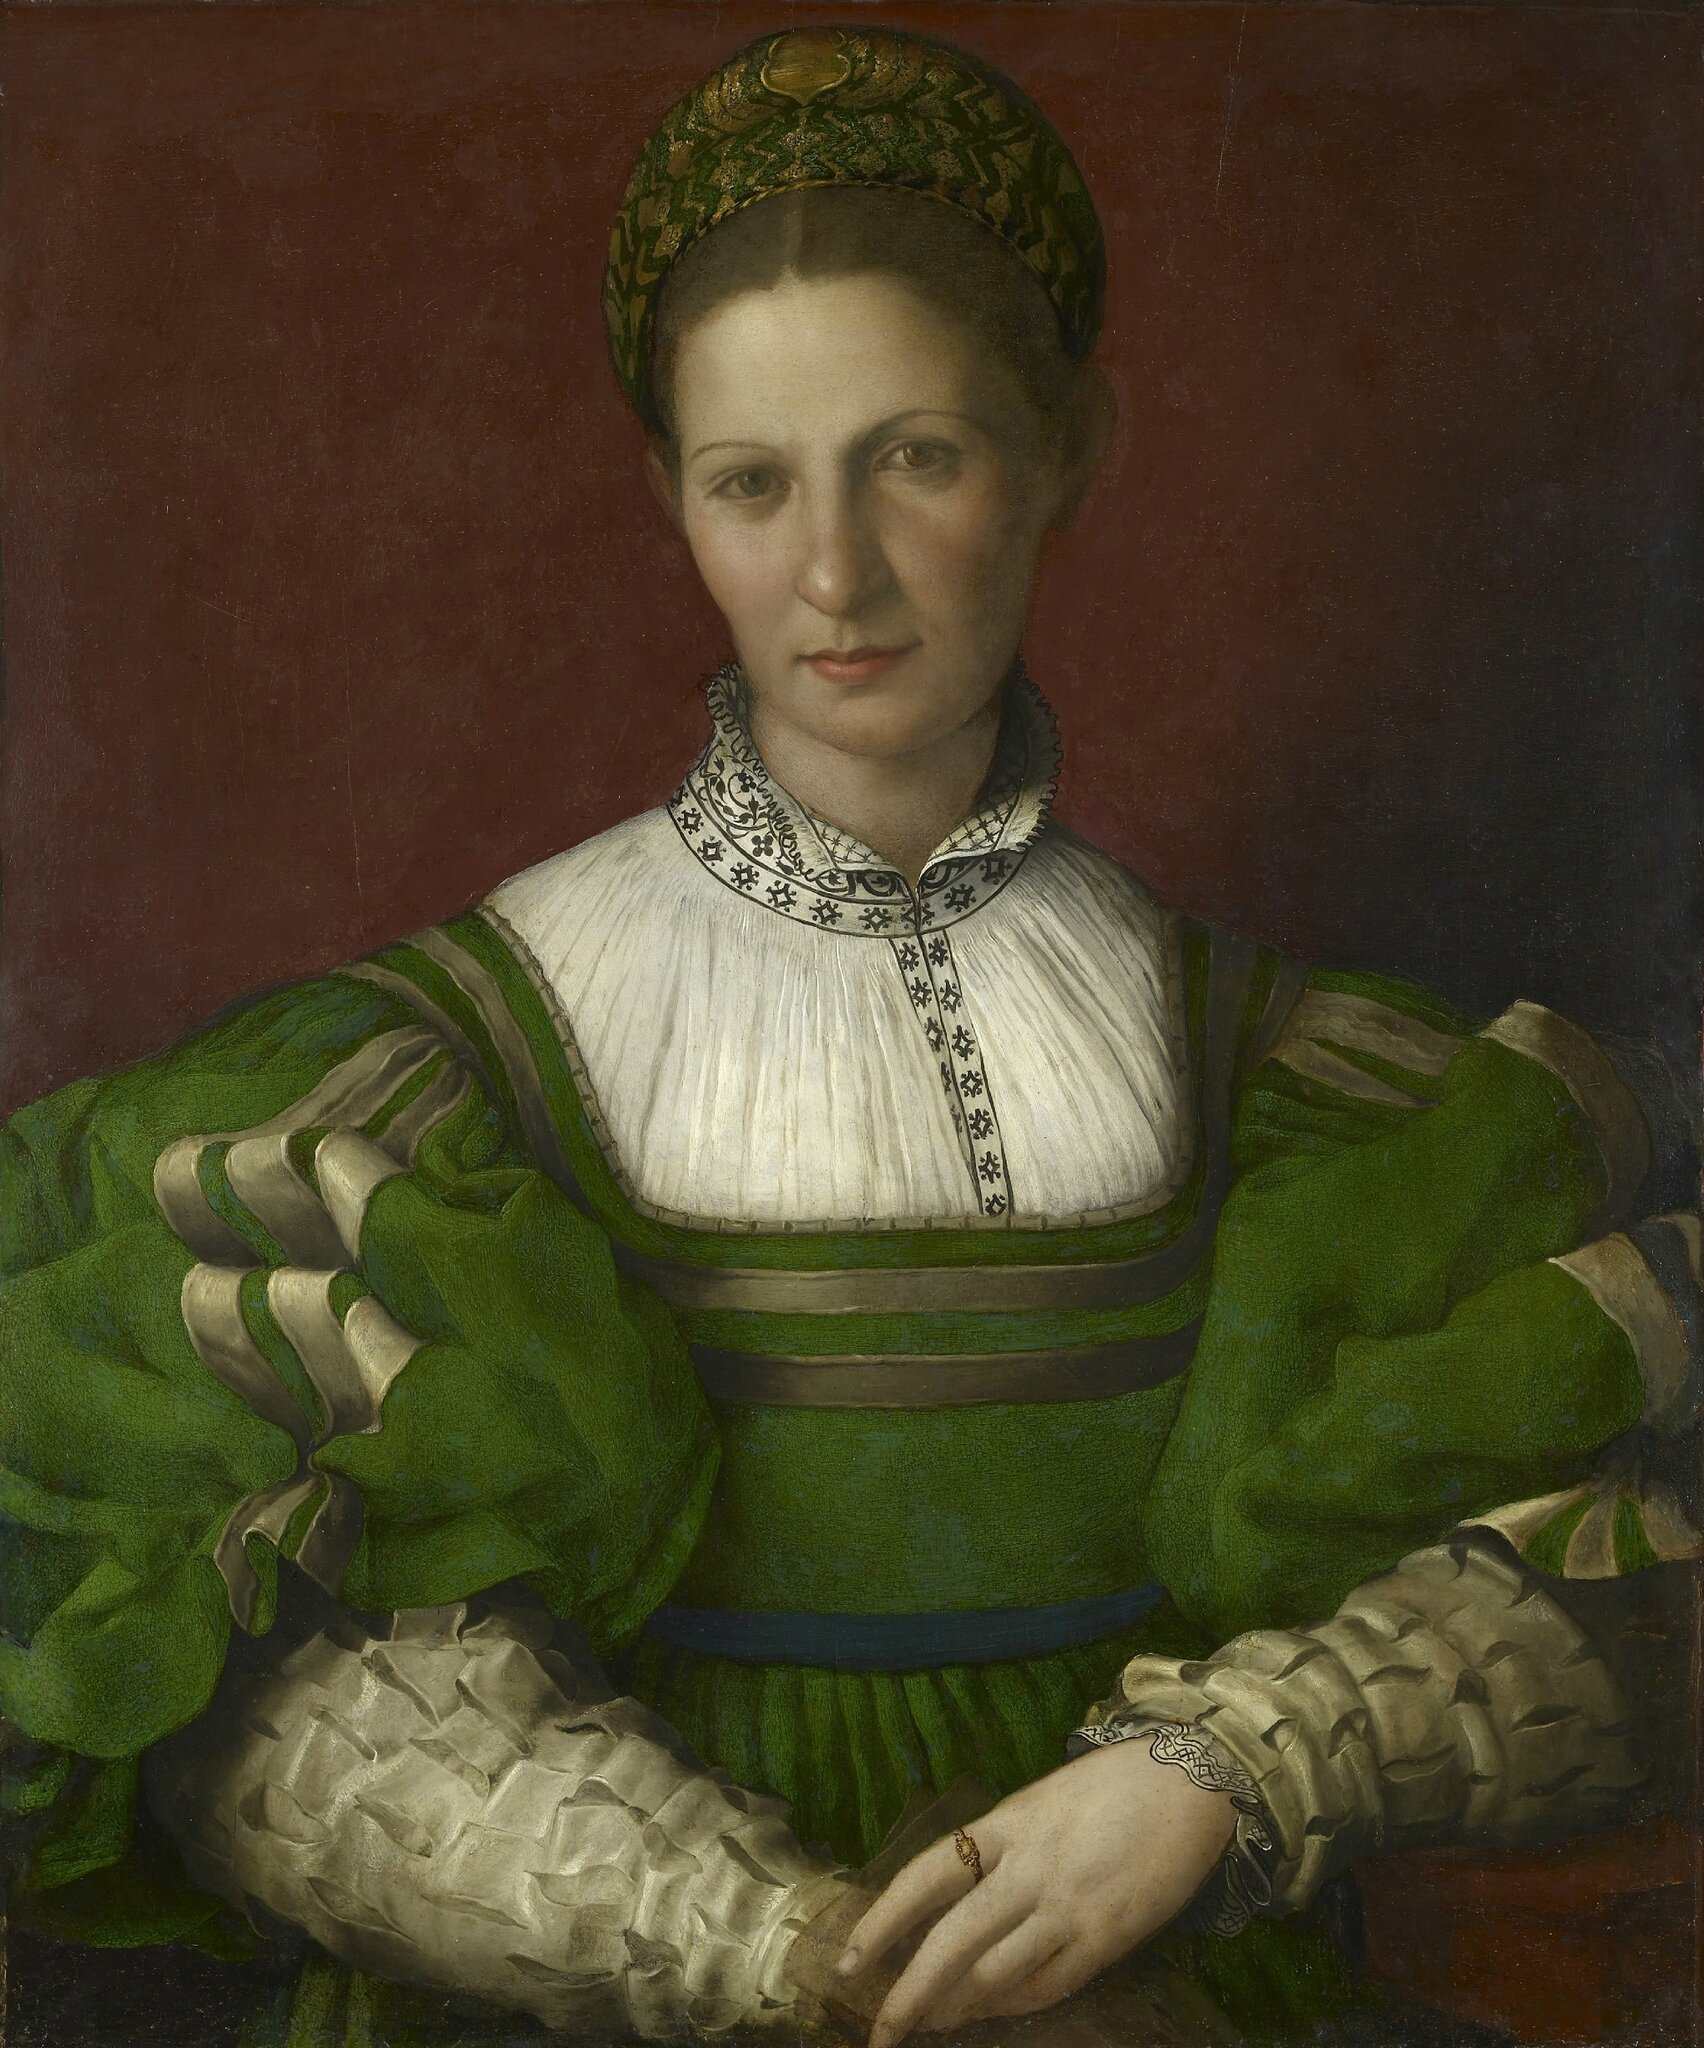 Large-scale exhibition of Florentine Mannerism opens at the Stadel Museum in Frankfurt